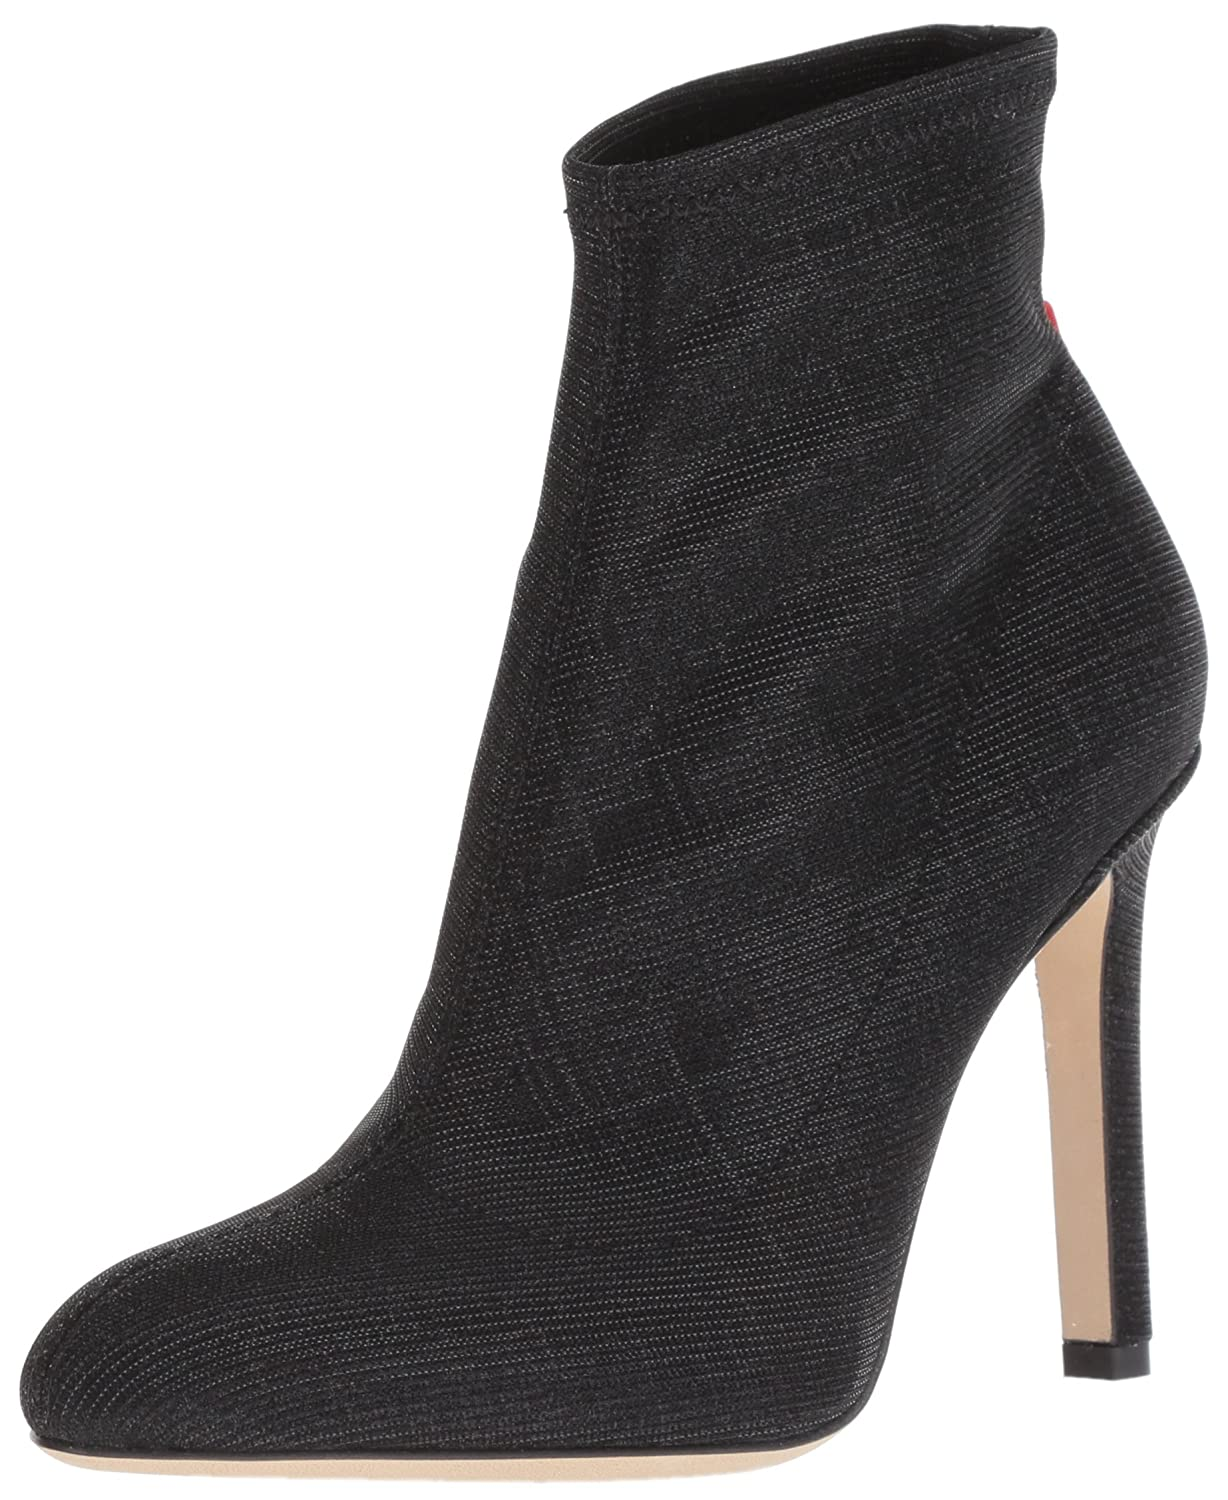 SJP by Sarah Jessica Parker Women's Apthorp Ankle Boot B077YDLM5M 35.5 B EU (5 US)|Black